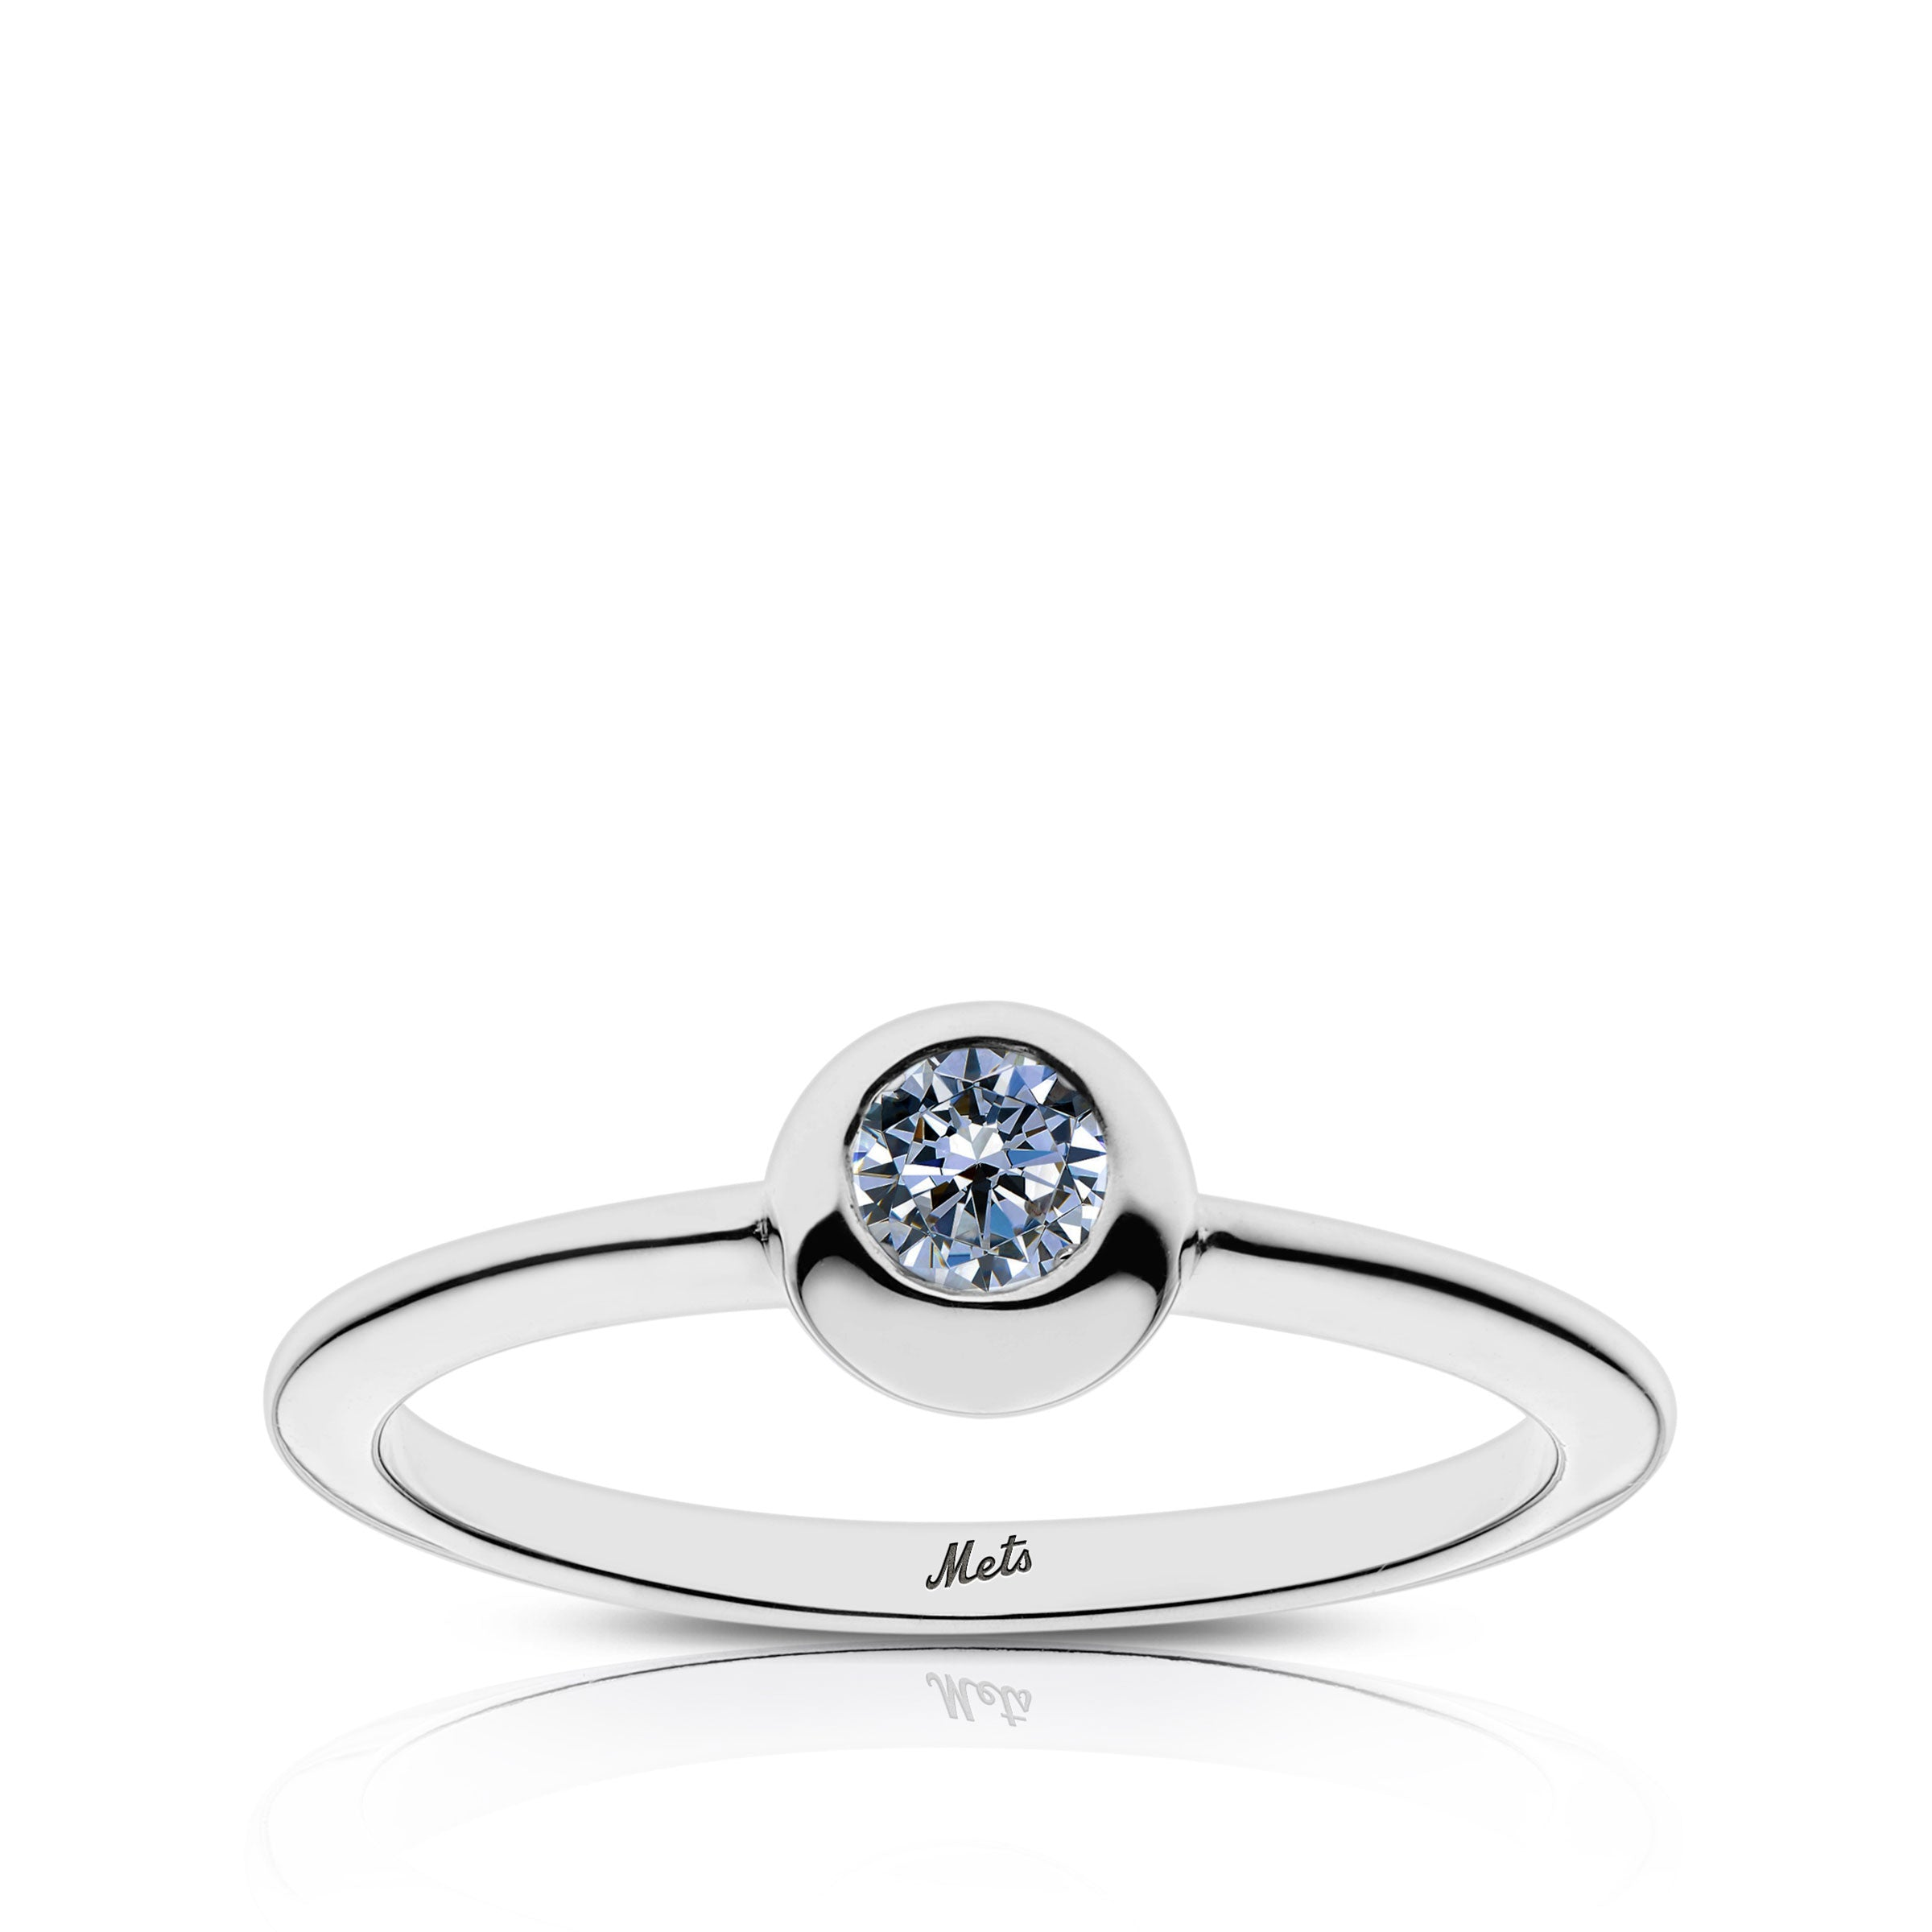 Mets Engraved White Sapphire Ring Size 5